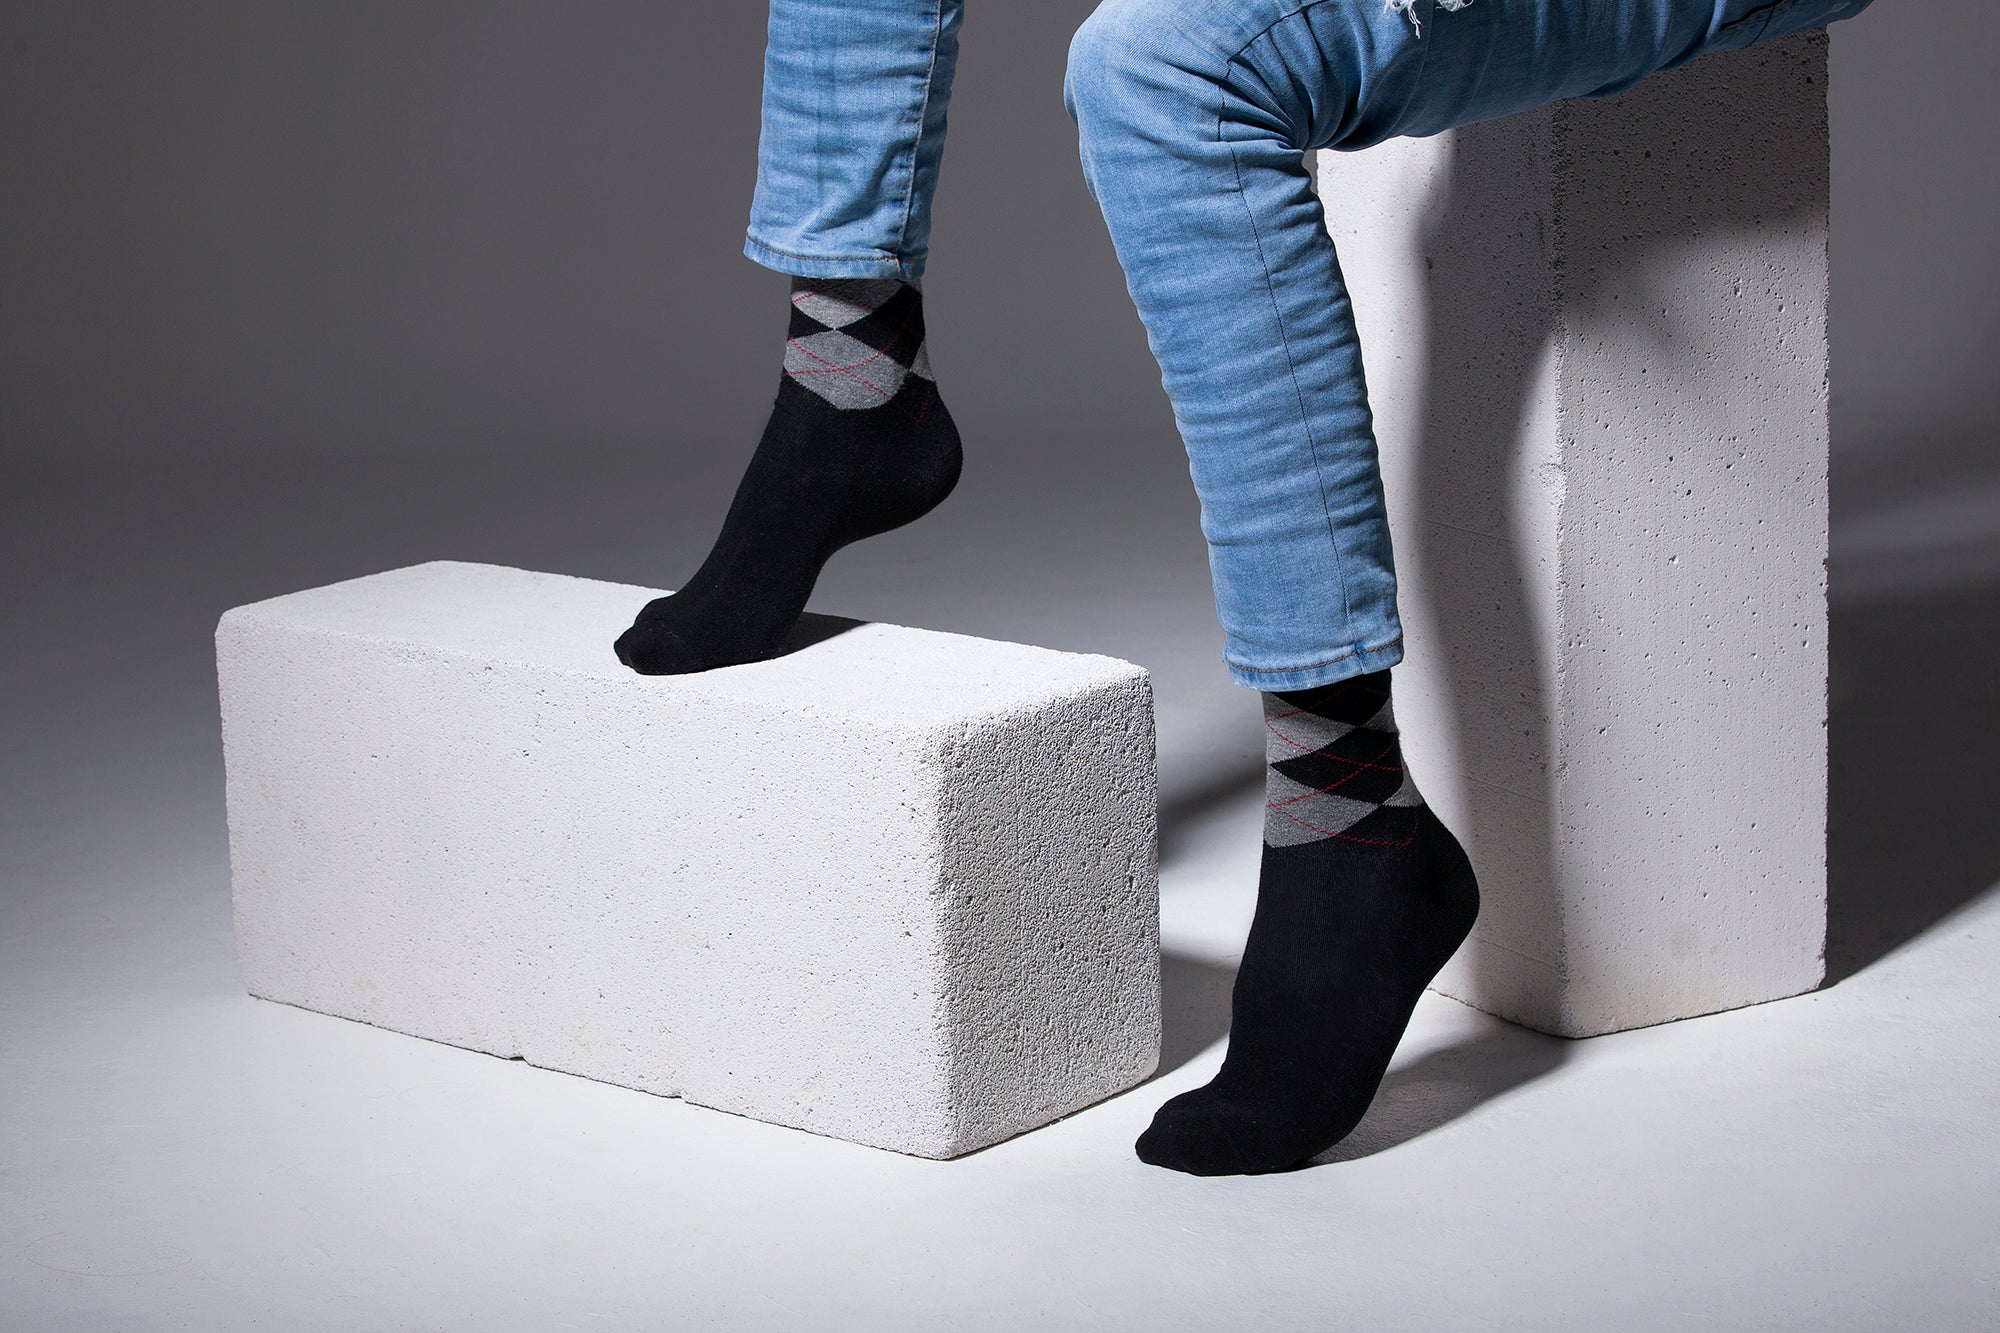 Men's Black Argyle Socks